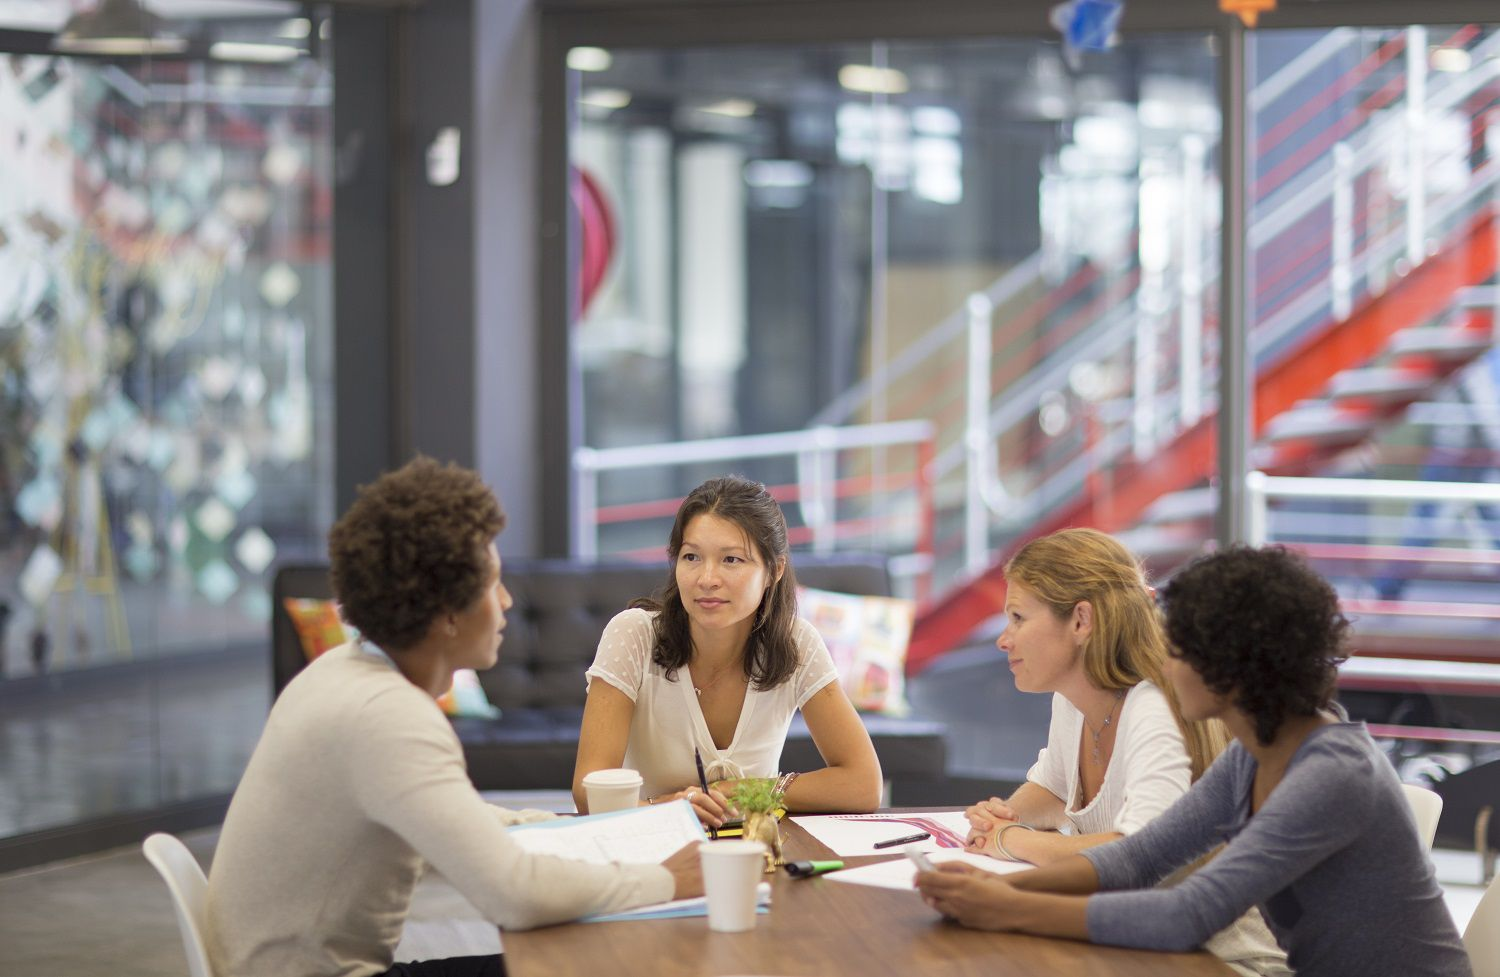 Group Interviews: Definition, Types and Tips